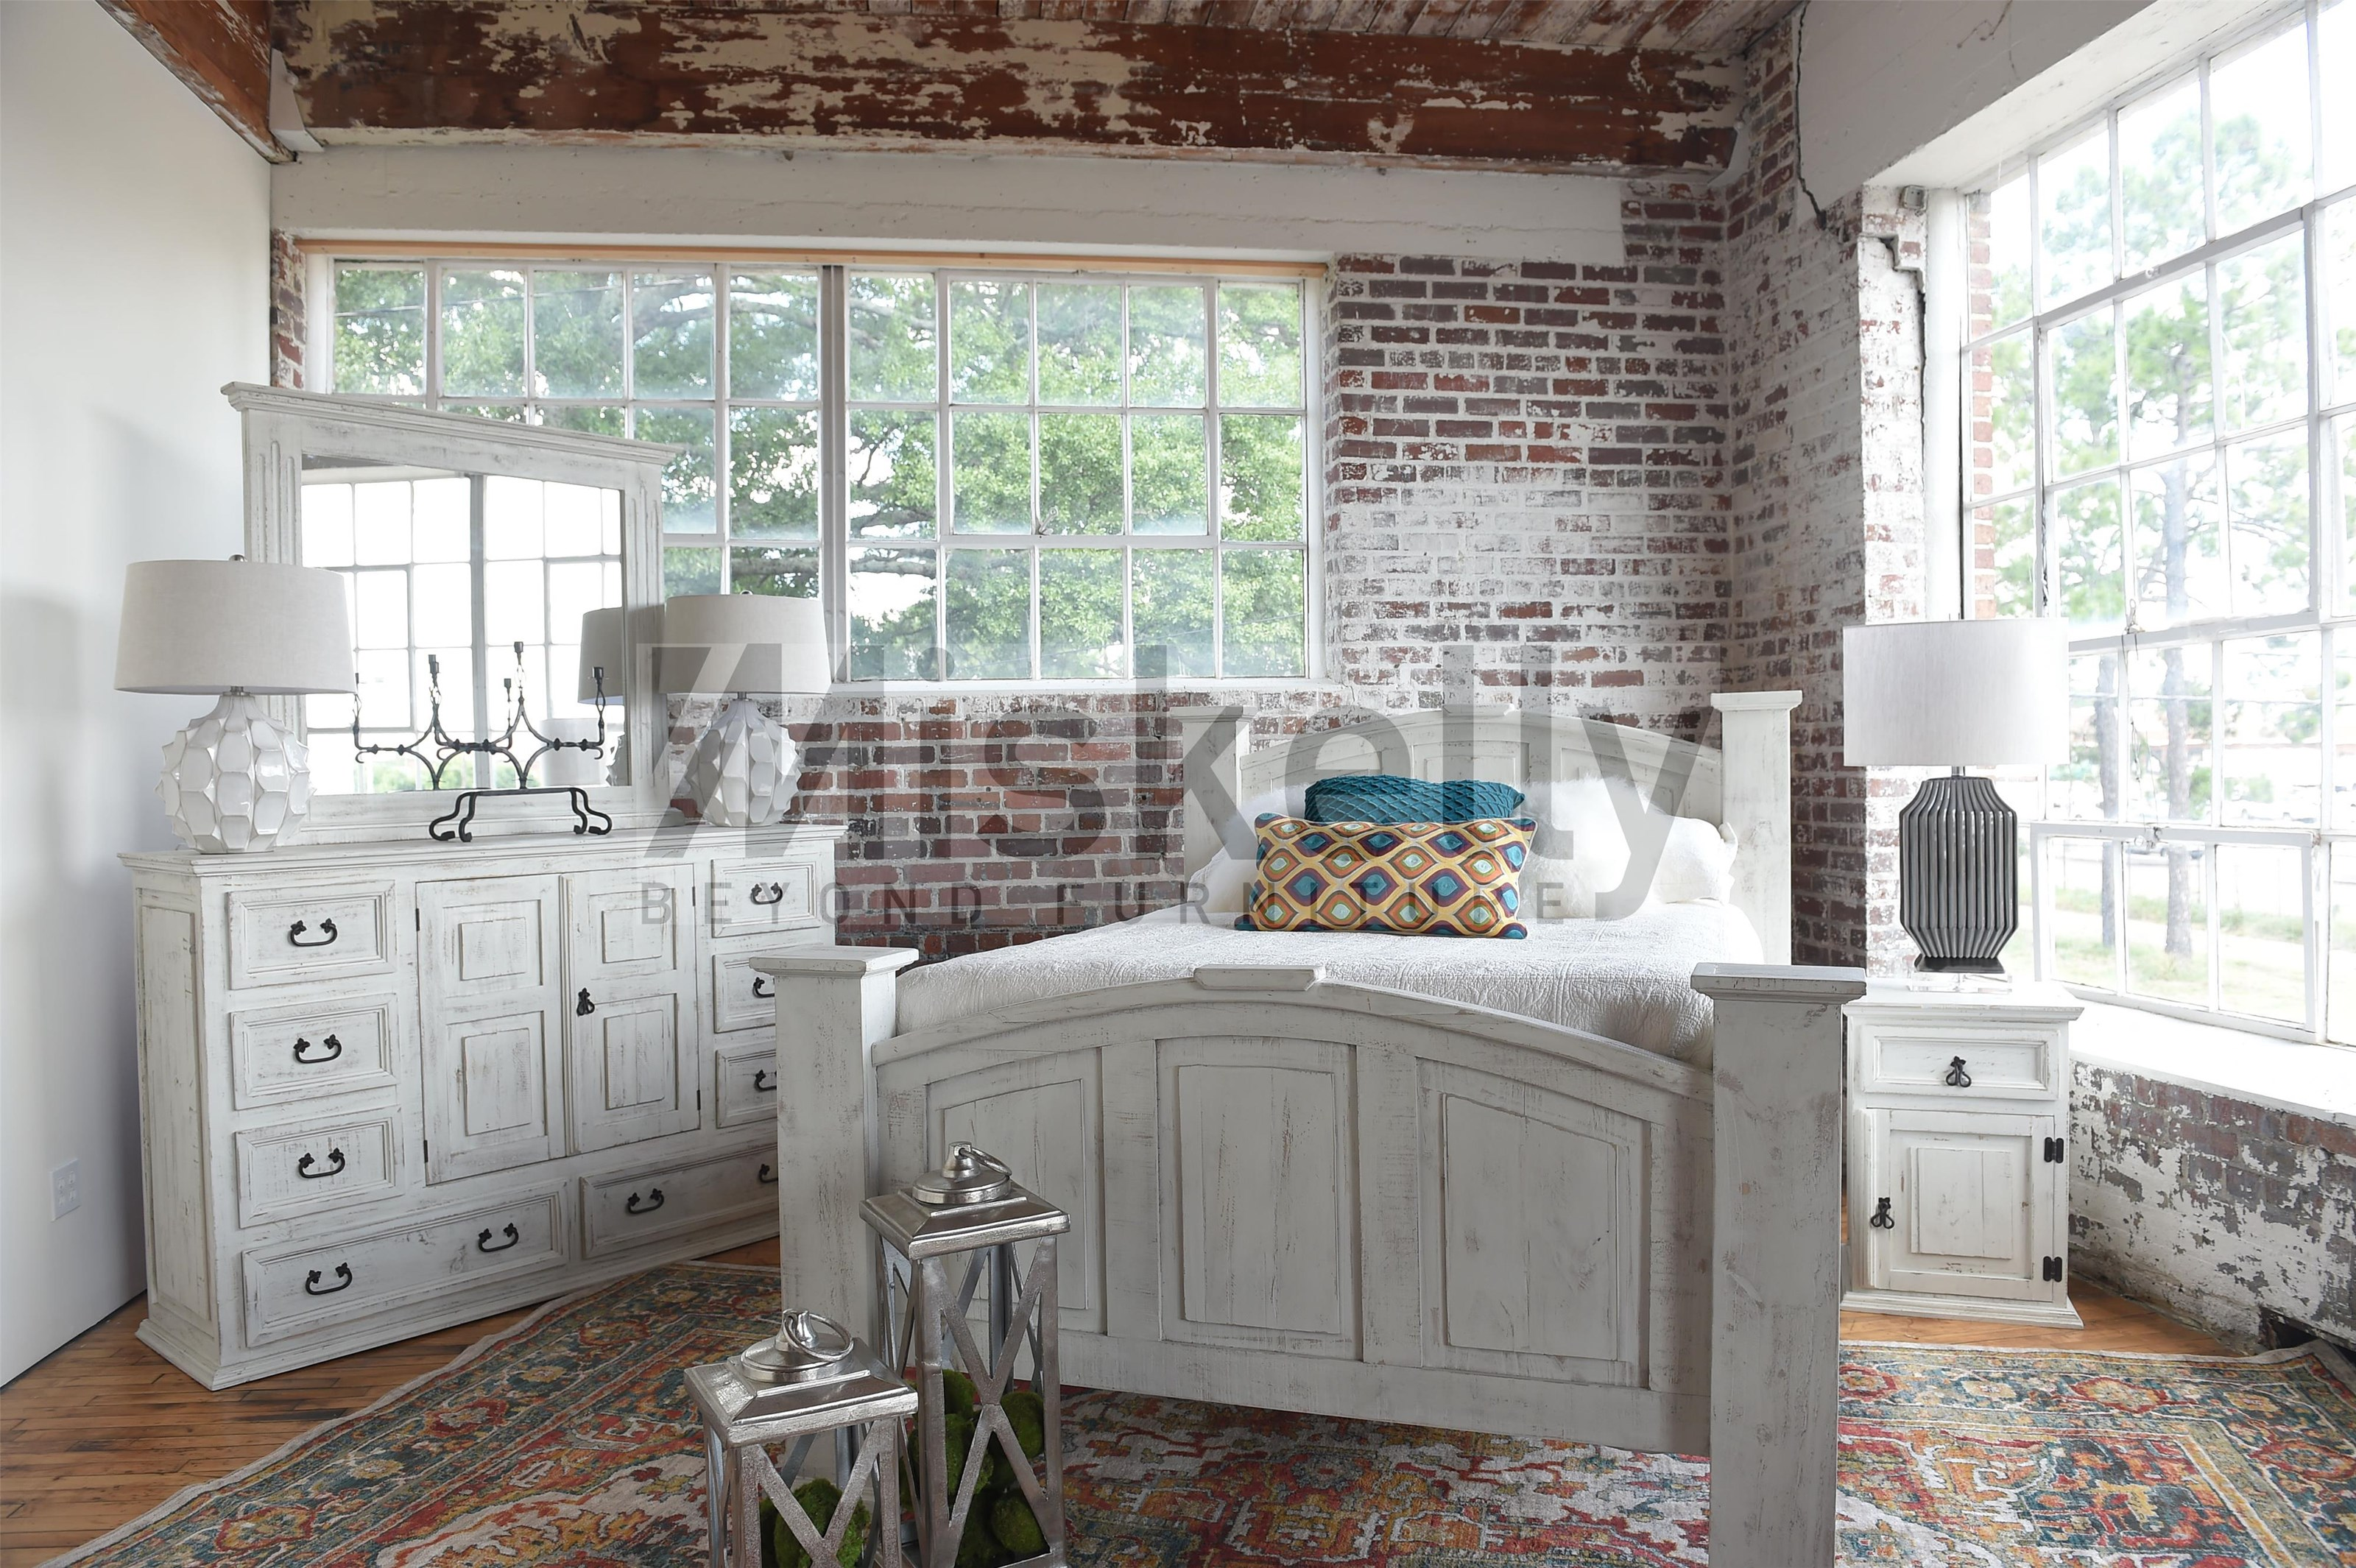 Queen Bed, Dresser, Mirror and Nighstand